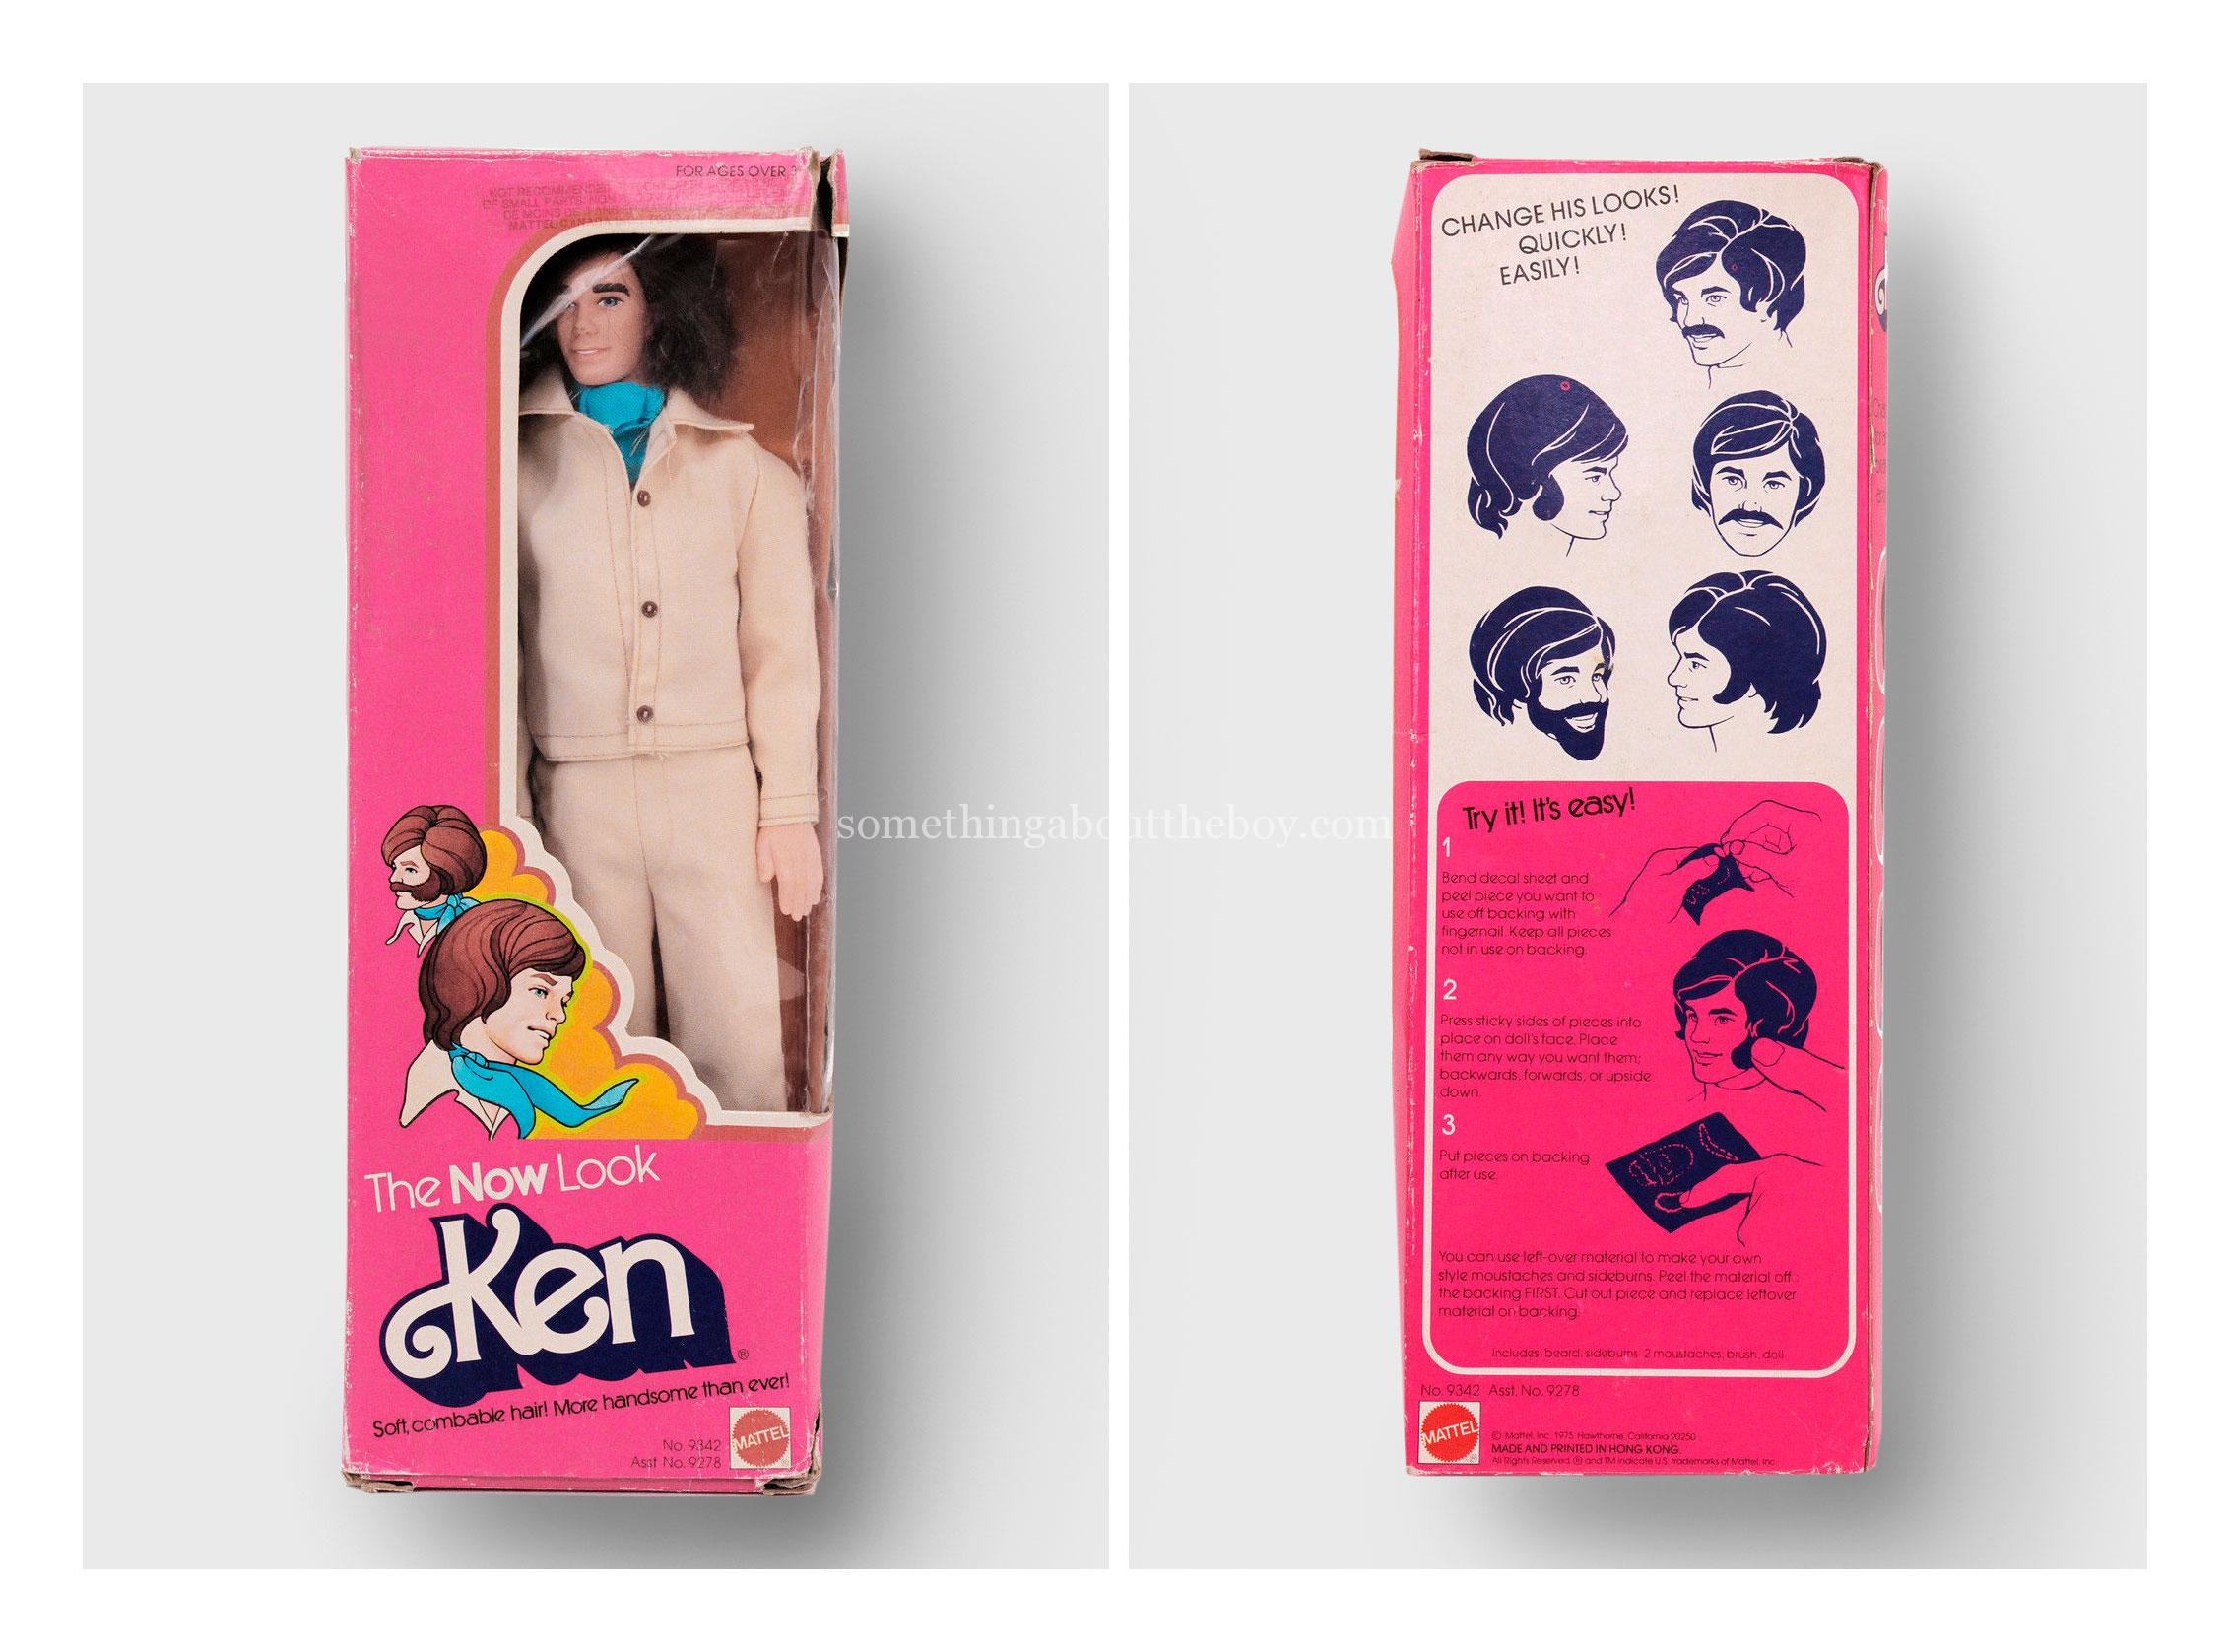 1977 #9342 The Now Look Ken (Canadian version)